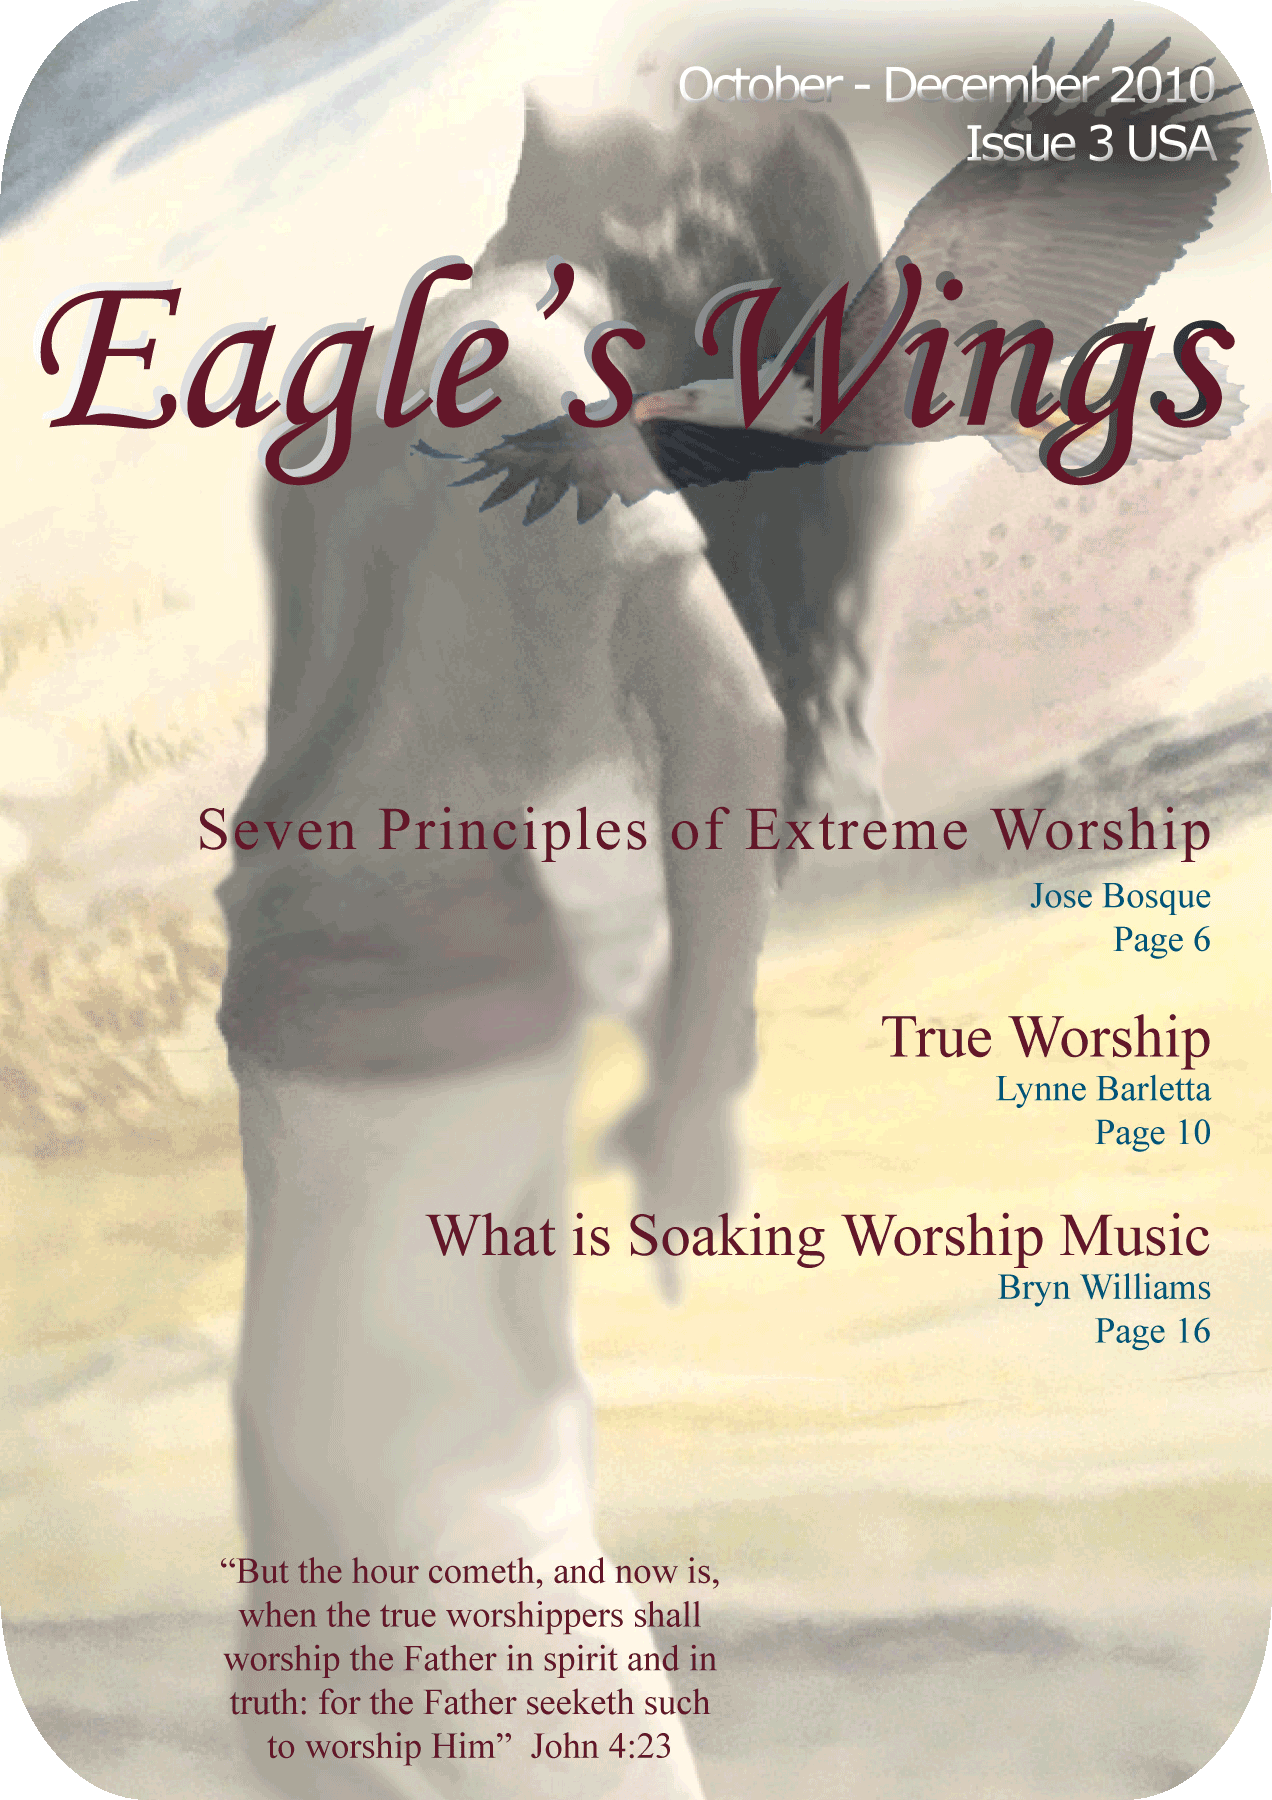 Eagle's Wings Issue 3 - Magazine Cover